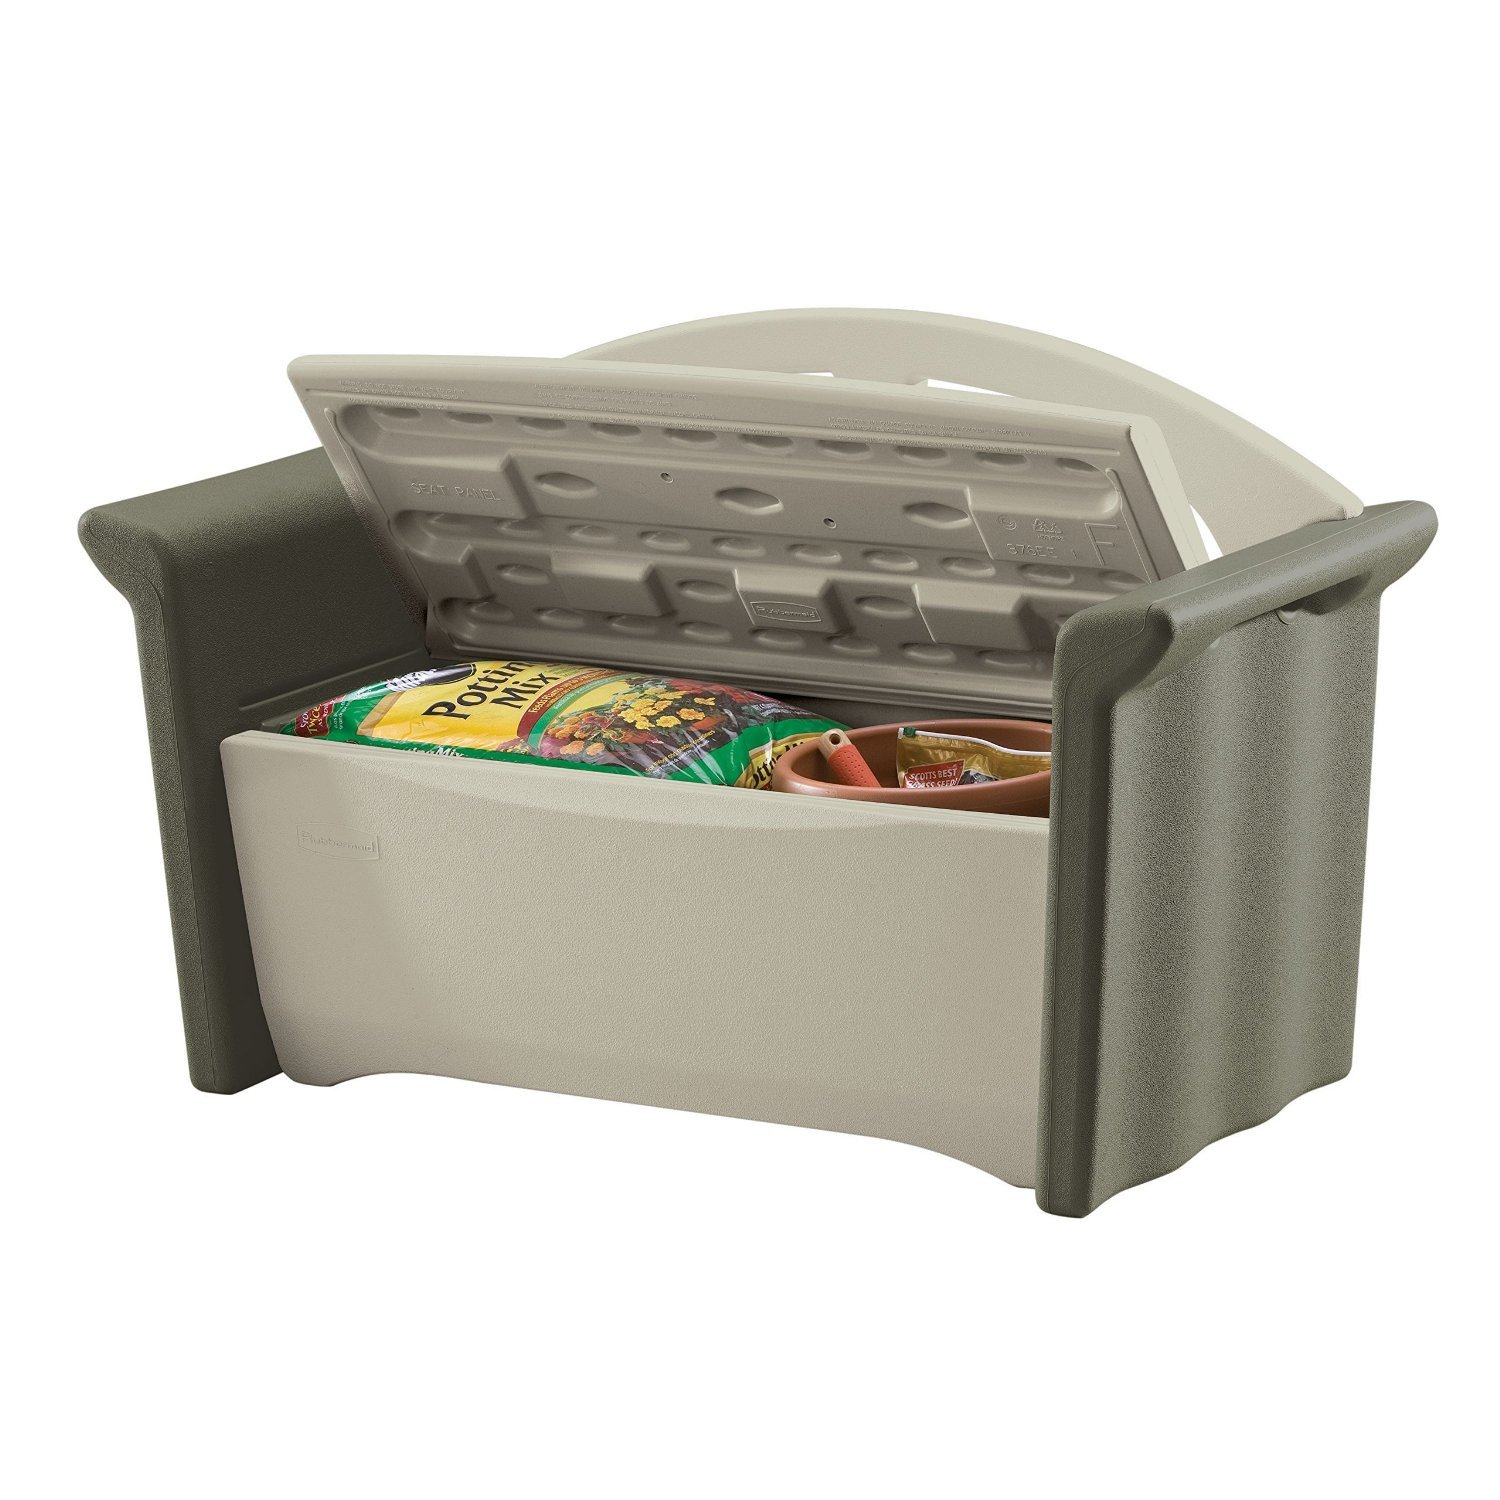 Amazon.com  Rubbermaid Outdoor Patio Storage Bench 4 cu. ft Olive/Sandstone (FG376401OLVSS)  Deck Boxes  Garden u0026 Outdoor  sc 1 st  Amazon.com & Amazon.com : Rubbermaid Outdoor Patio Storage Bench 4 cu. ft Olive ...